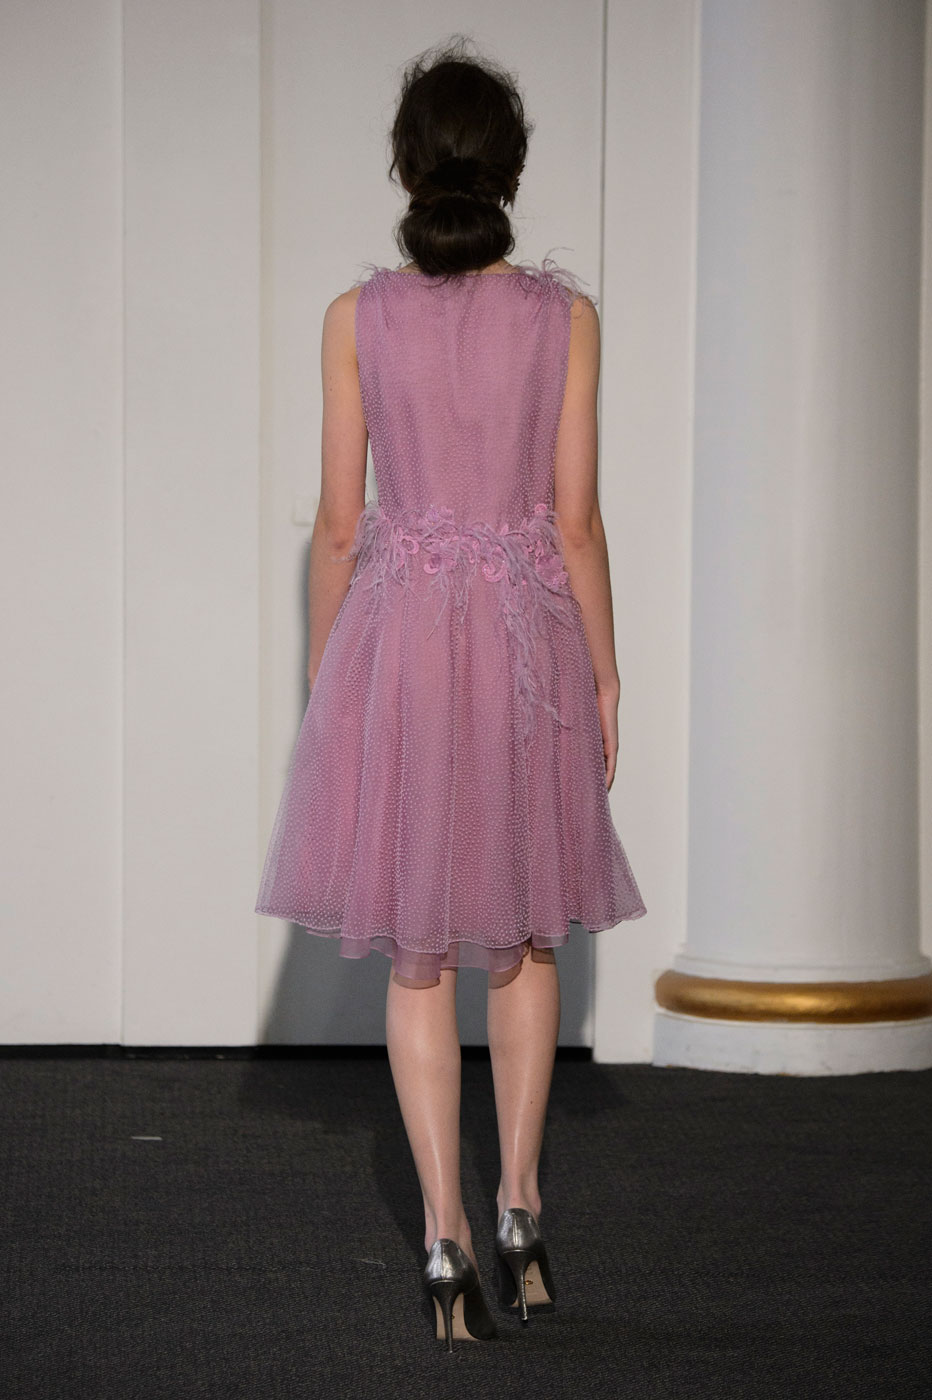 Busardi-fashion-runway-show-haute-couture-paris-spring-2015-the-impression-36